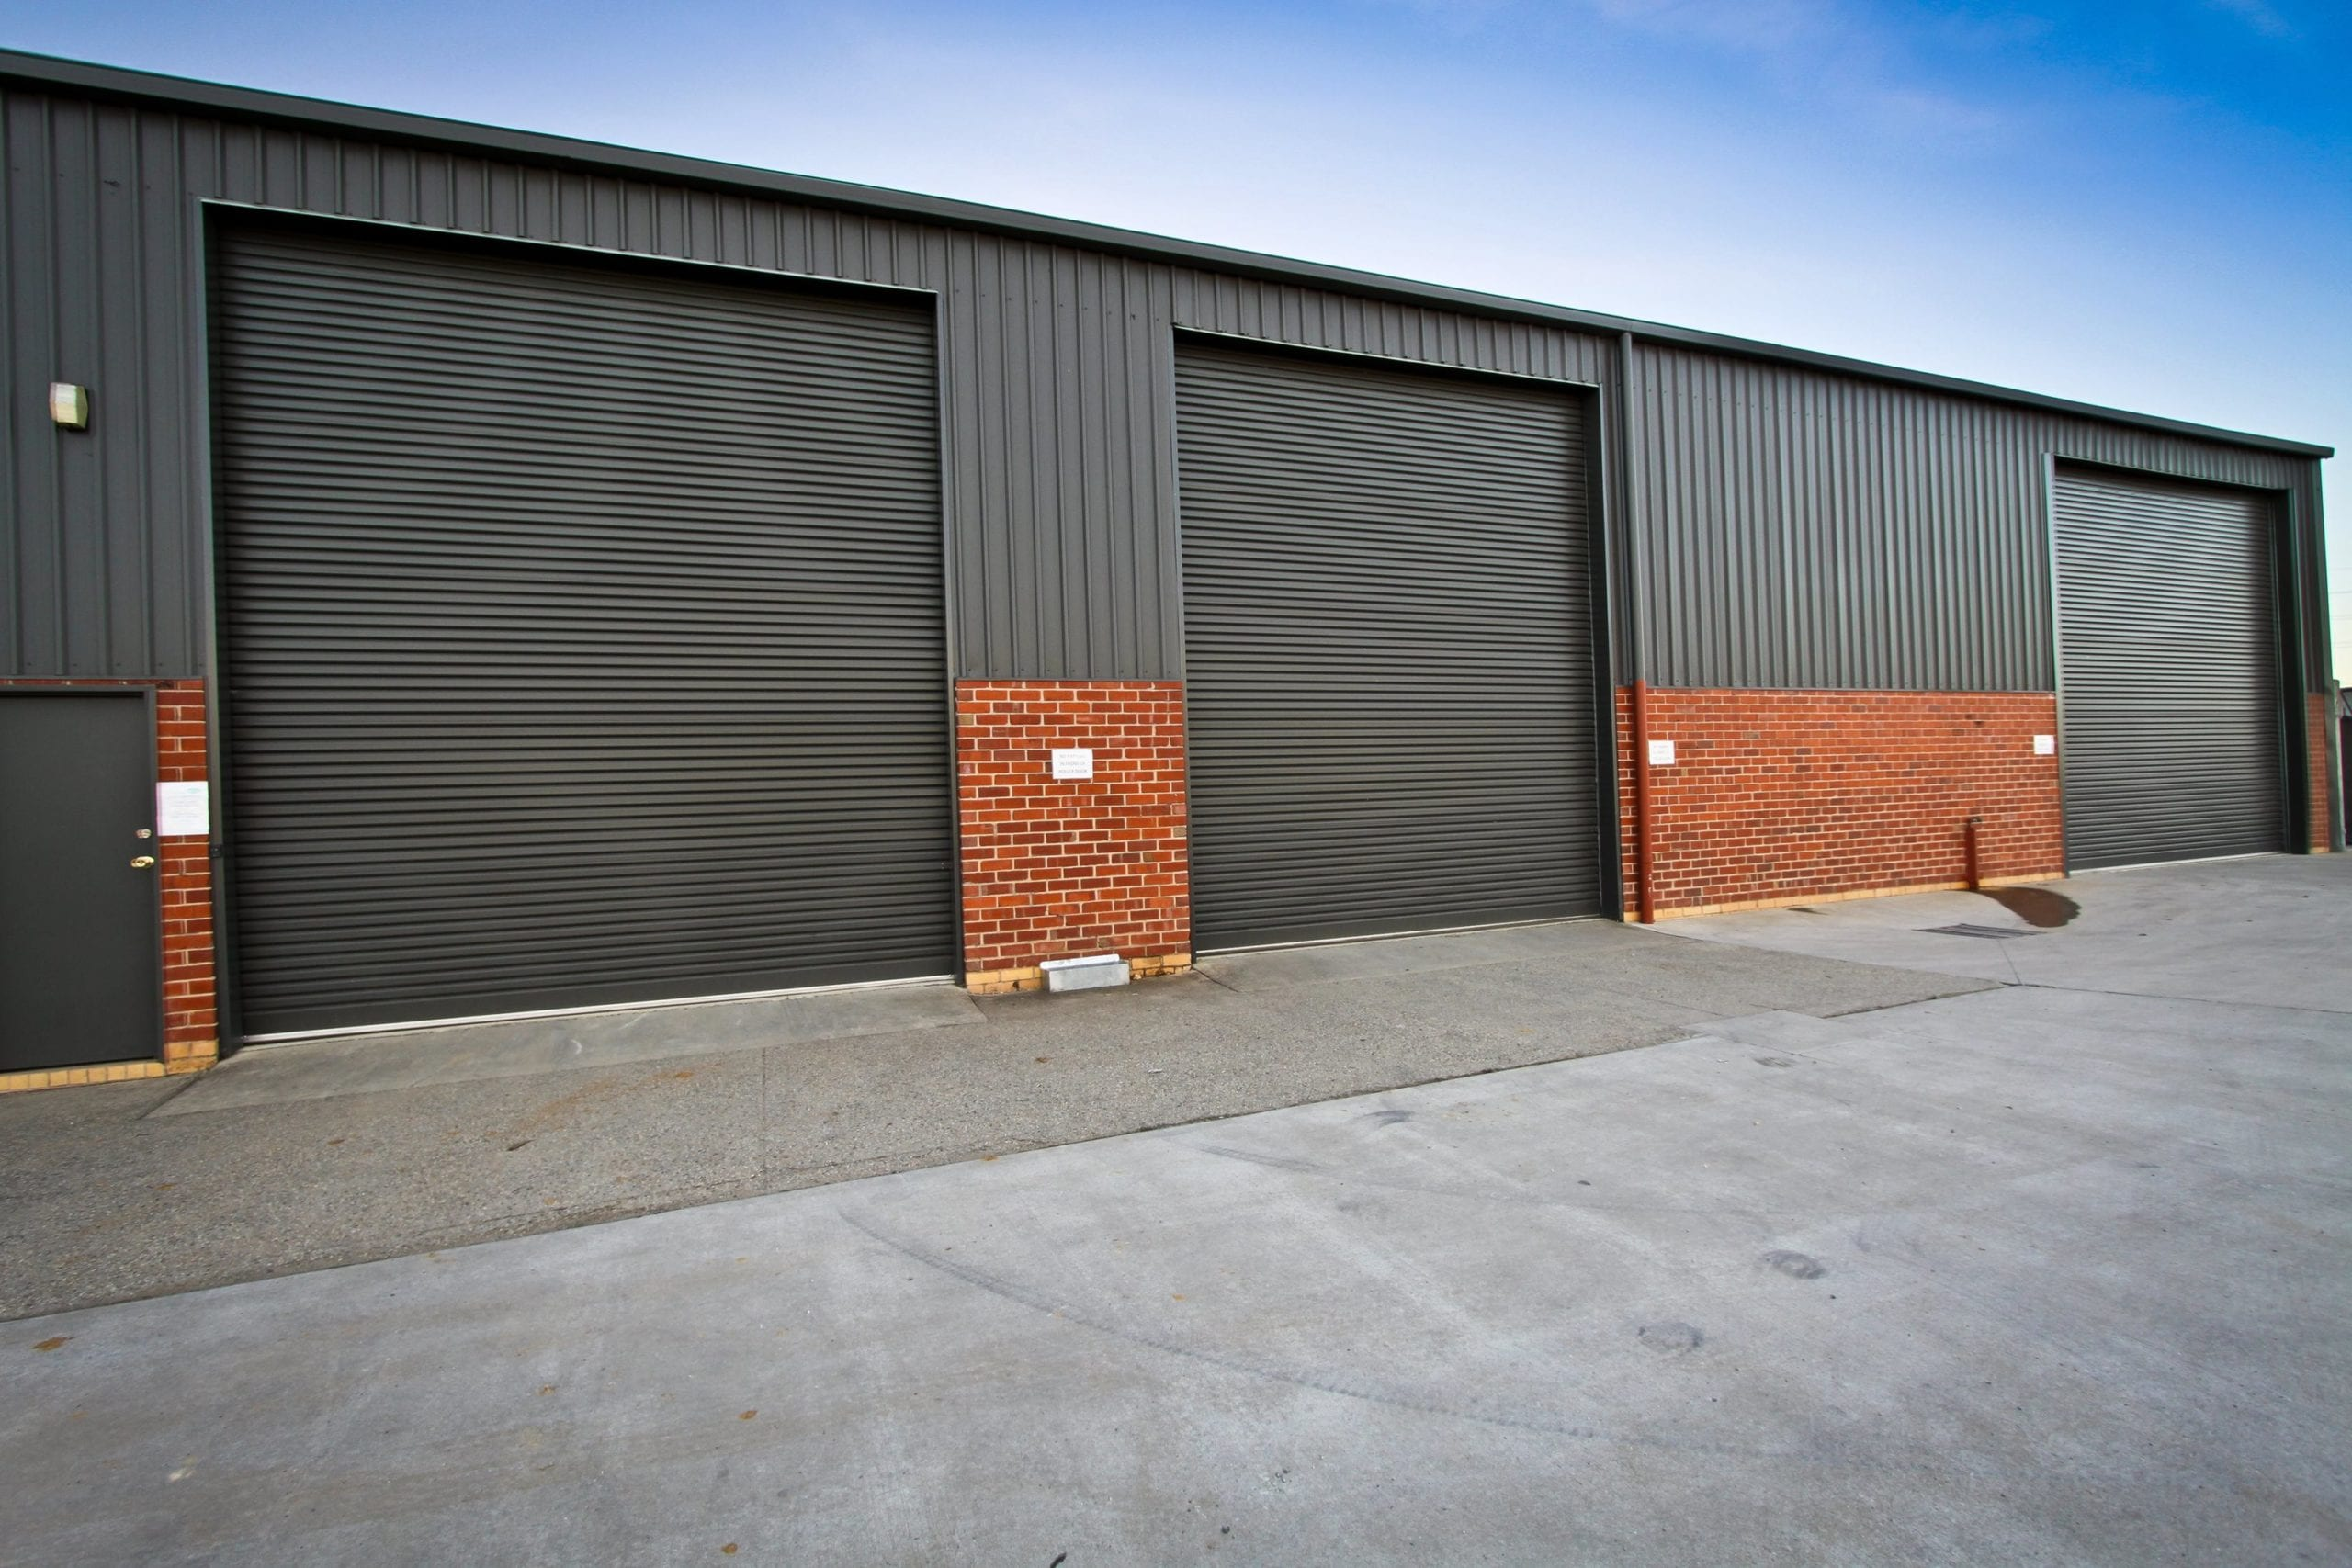 Keeping Your Business Secure with Security Roller Shutters